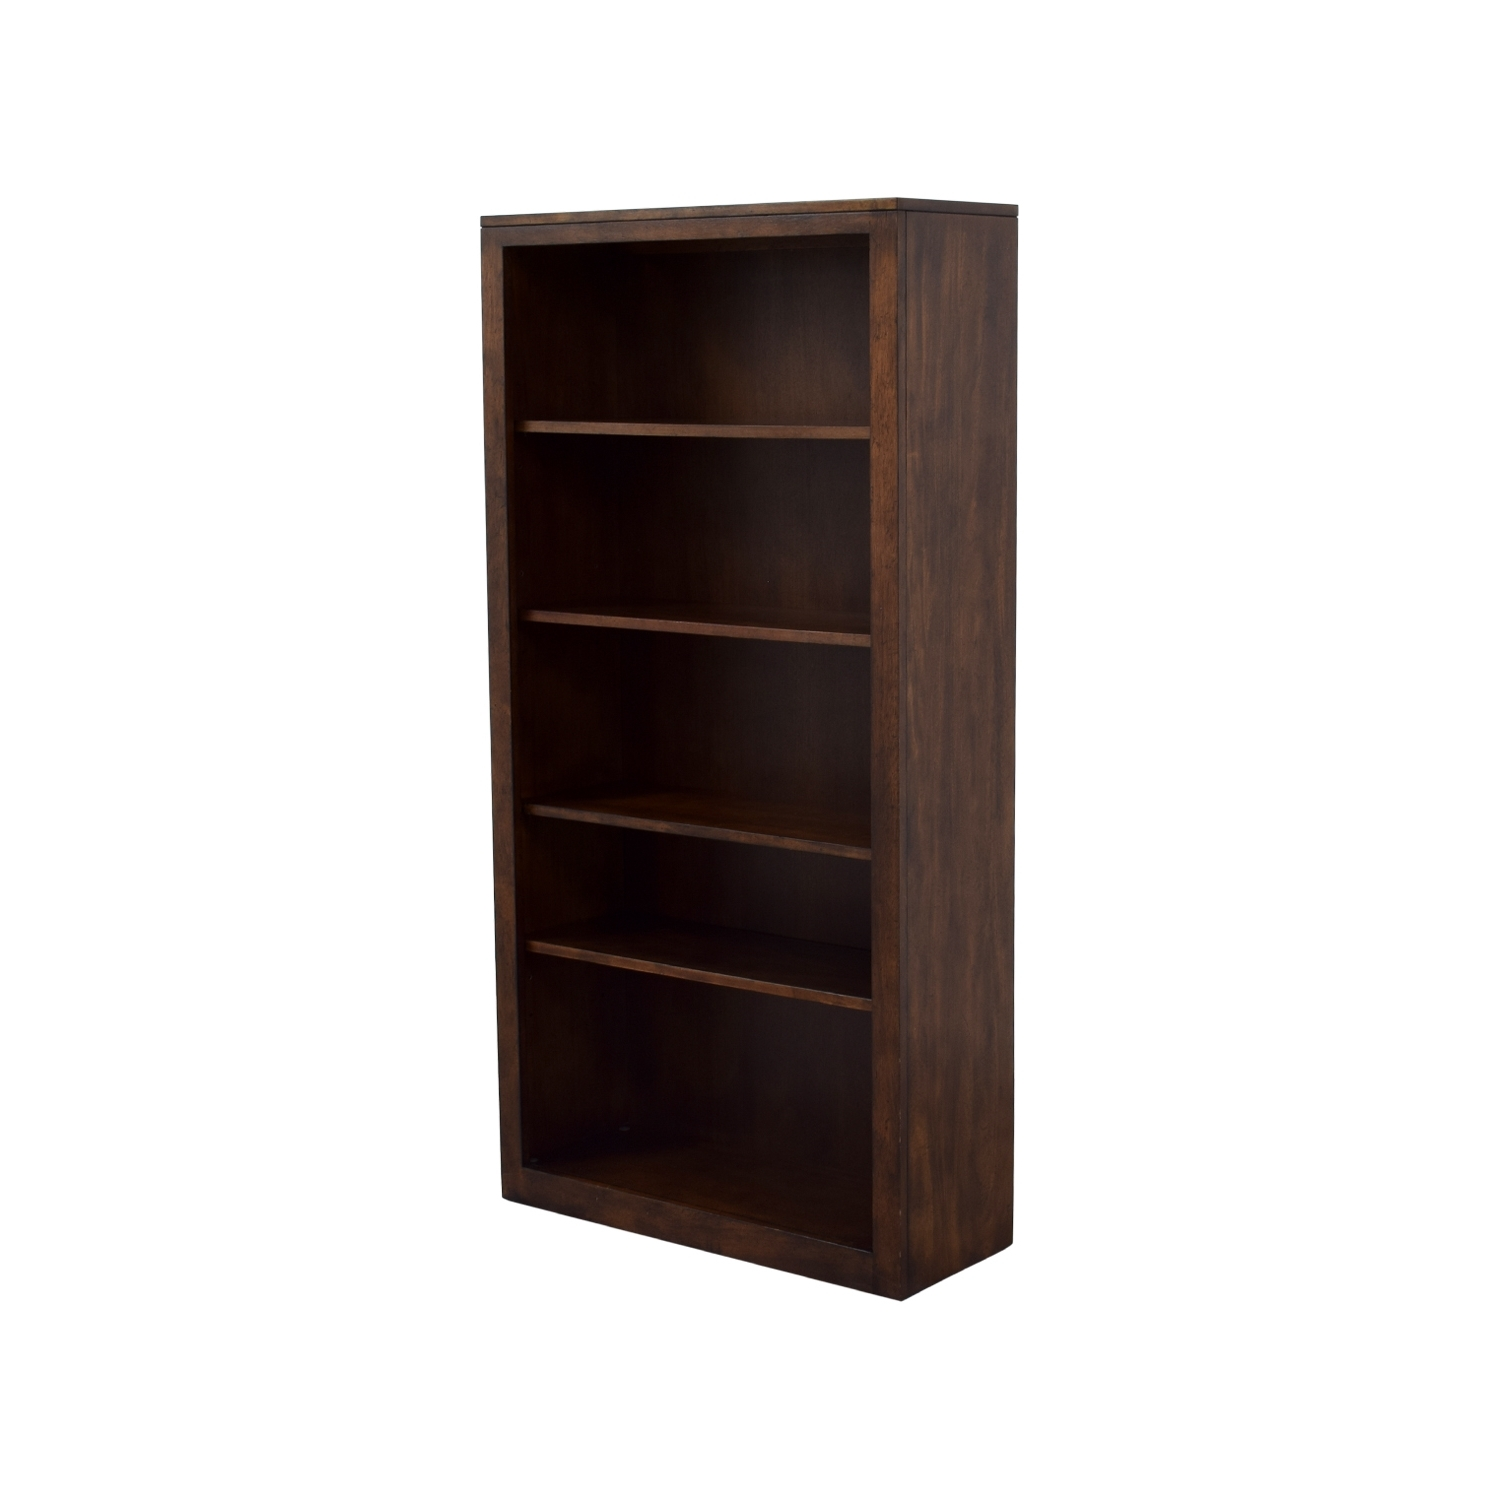 [%78% Off – Ethan Allen Ethan Allen Bookcase / Storage Regarding Widely Used Ethan Allen Bookcases|ethan Allen Bookcases Throughout Well Known 78% Off – Ethan Allen Ethan Allen Bookcase / Storage|preferred Ethan Allen Bookcases In 78% Off – Ethan Allen Ethan Allen Bookcase / Storage|latest 78% Off – Ethan Allen Ethan Allen Bookcase / Storage Intended For Ethan Allen Bookcases%] (View 7 of 15)